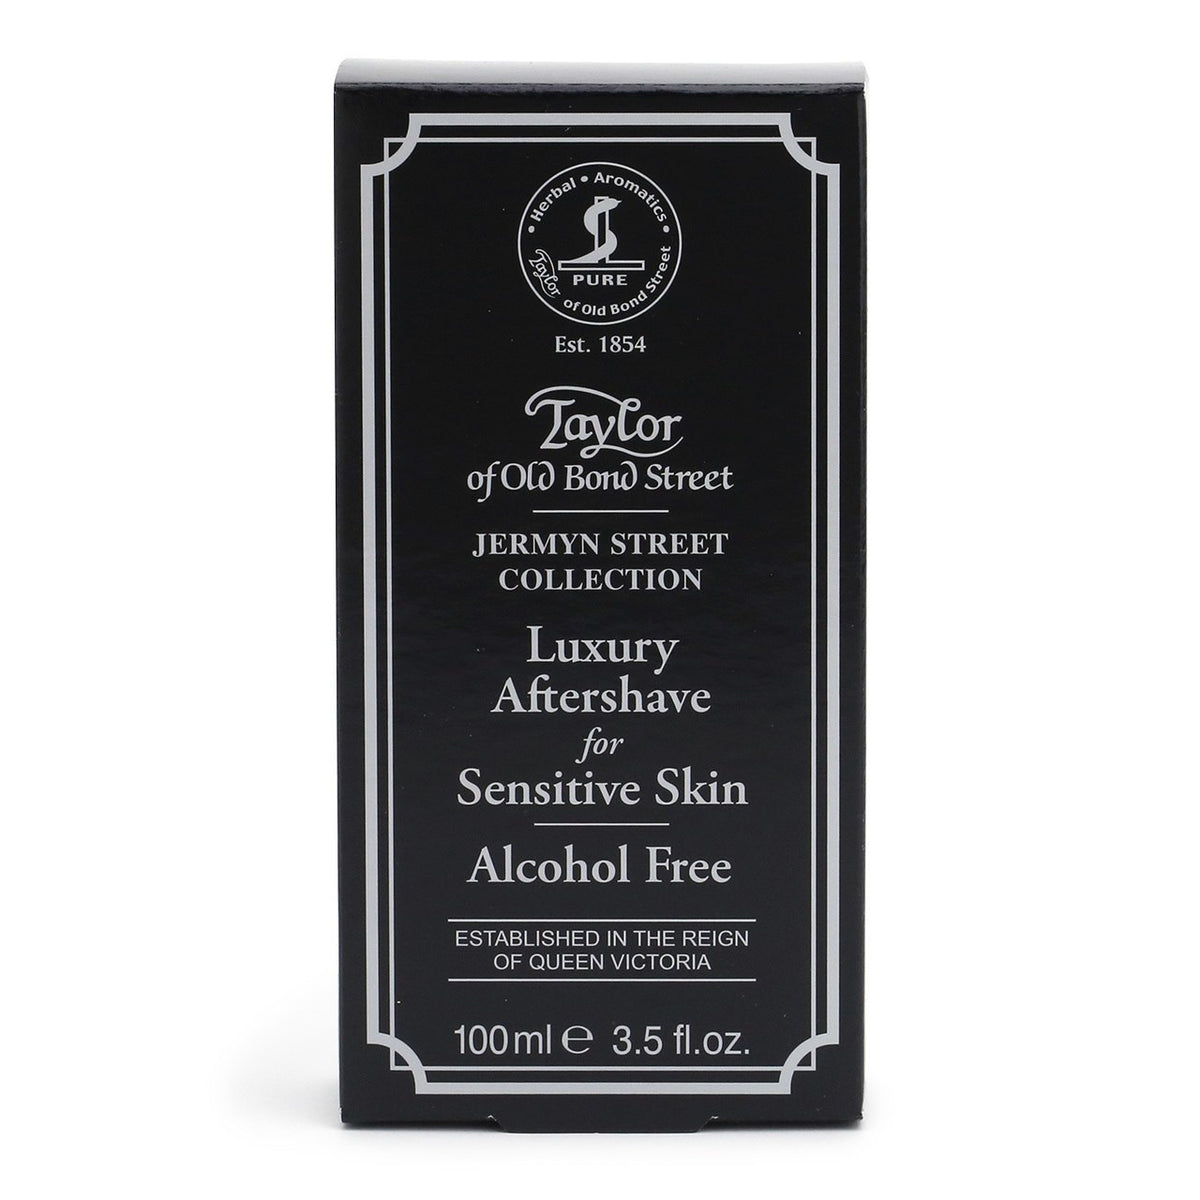 Taylor of Old Bond Street Alcohol Free Aftershave Lotion 100ml - Jermyn Street